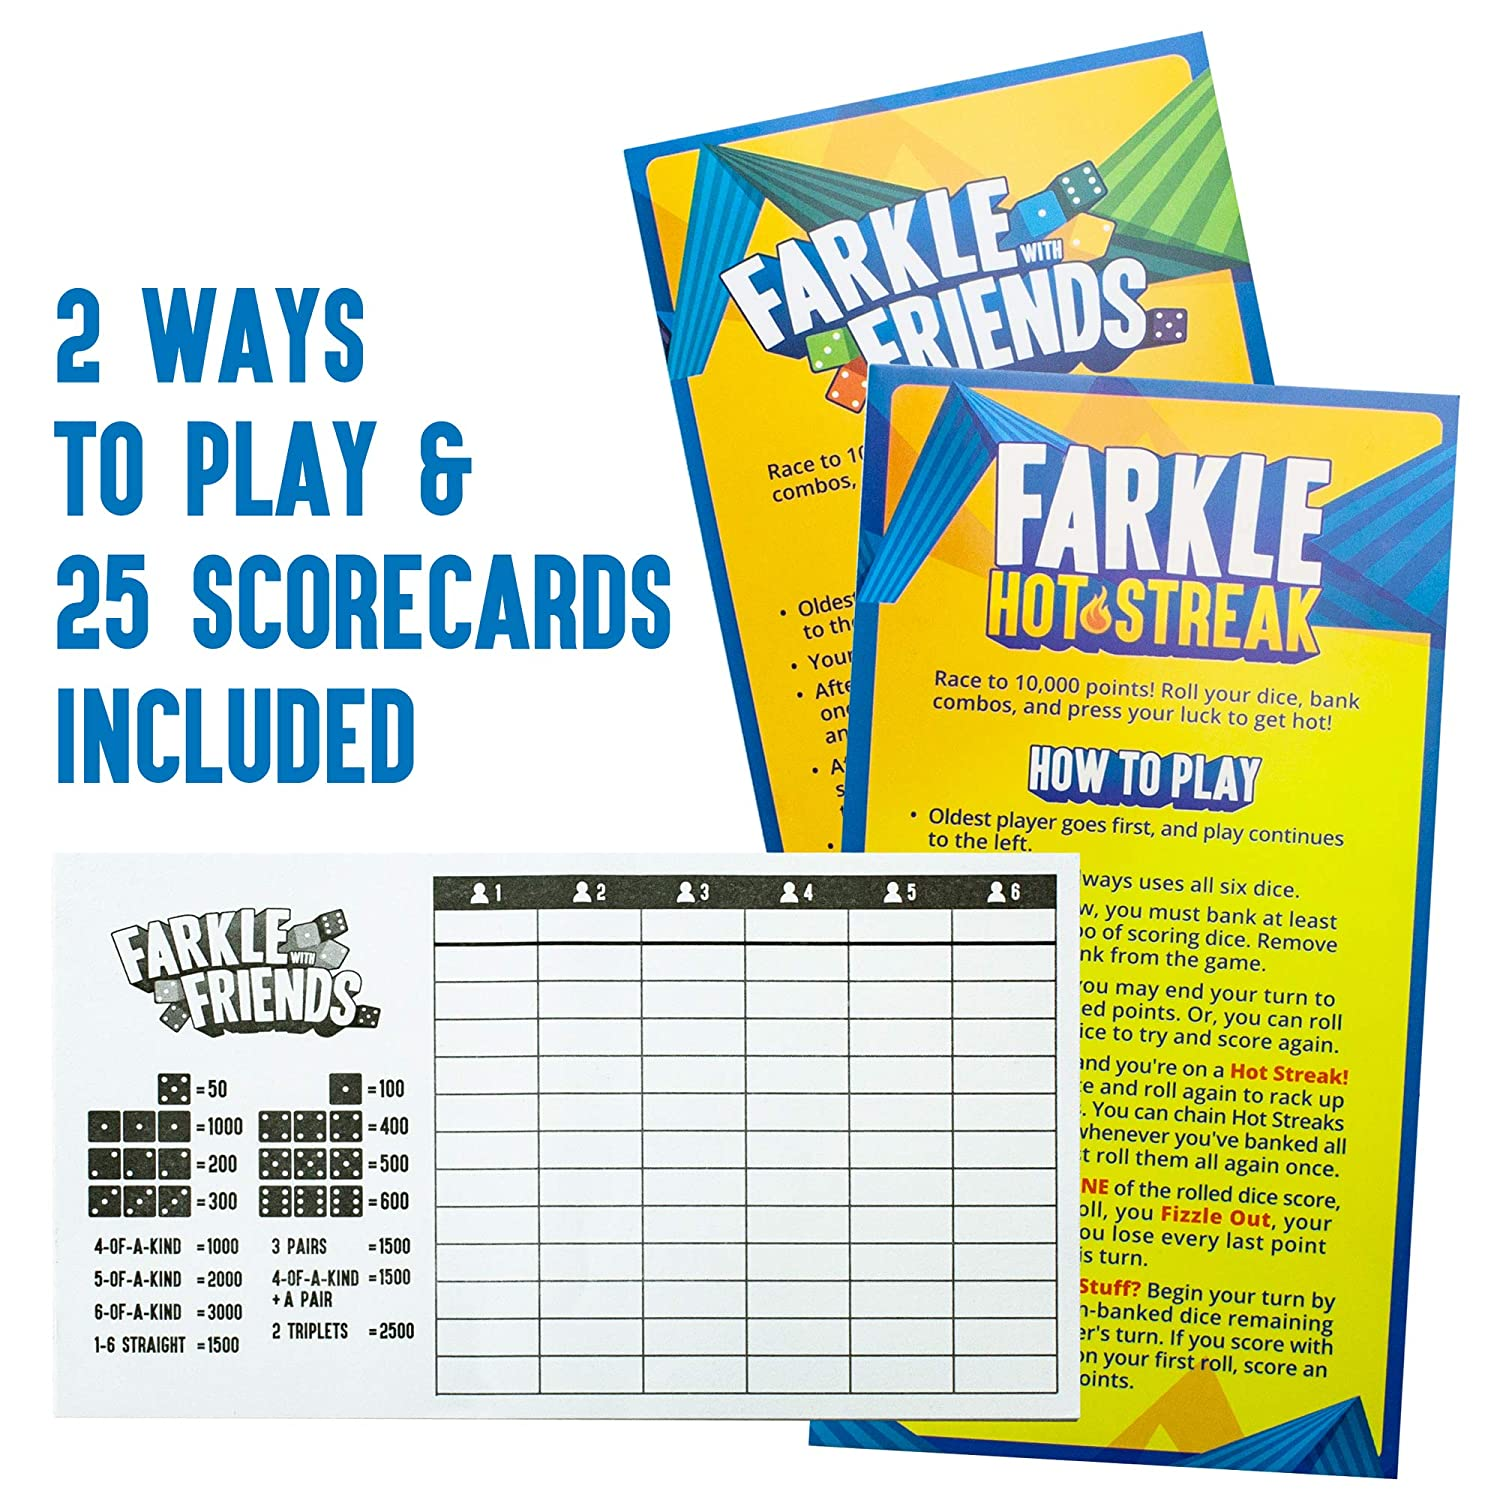 graphic about Farkle Instructions Printable known as Farkle With Close friends: The Clic Cube Recreation 6-Participant Bash Tin Preset Involves 36 Cube, 6 Cube Cups, 25 Scorecards Top quality Storage Tin Household Cube